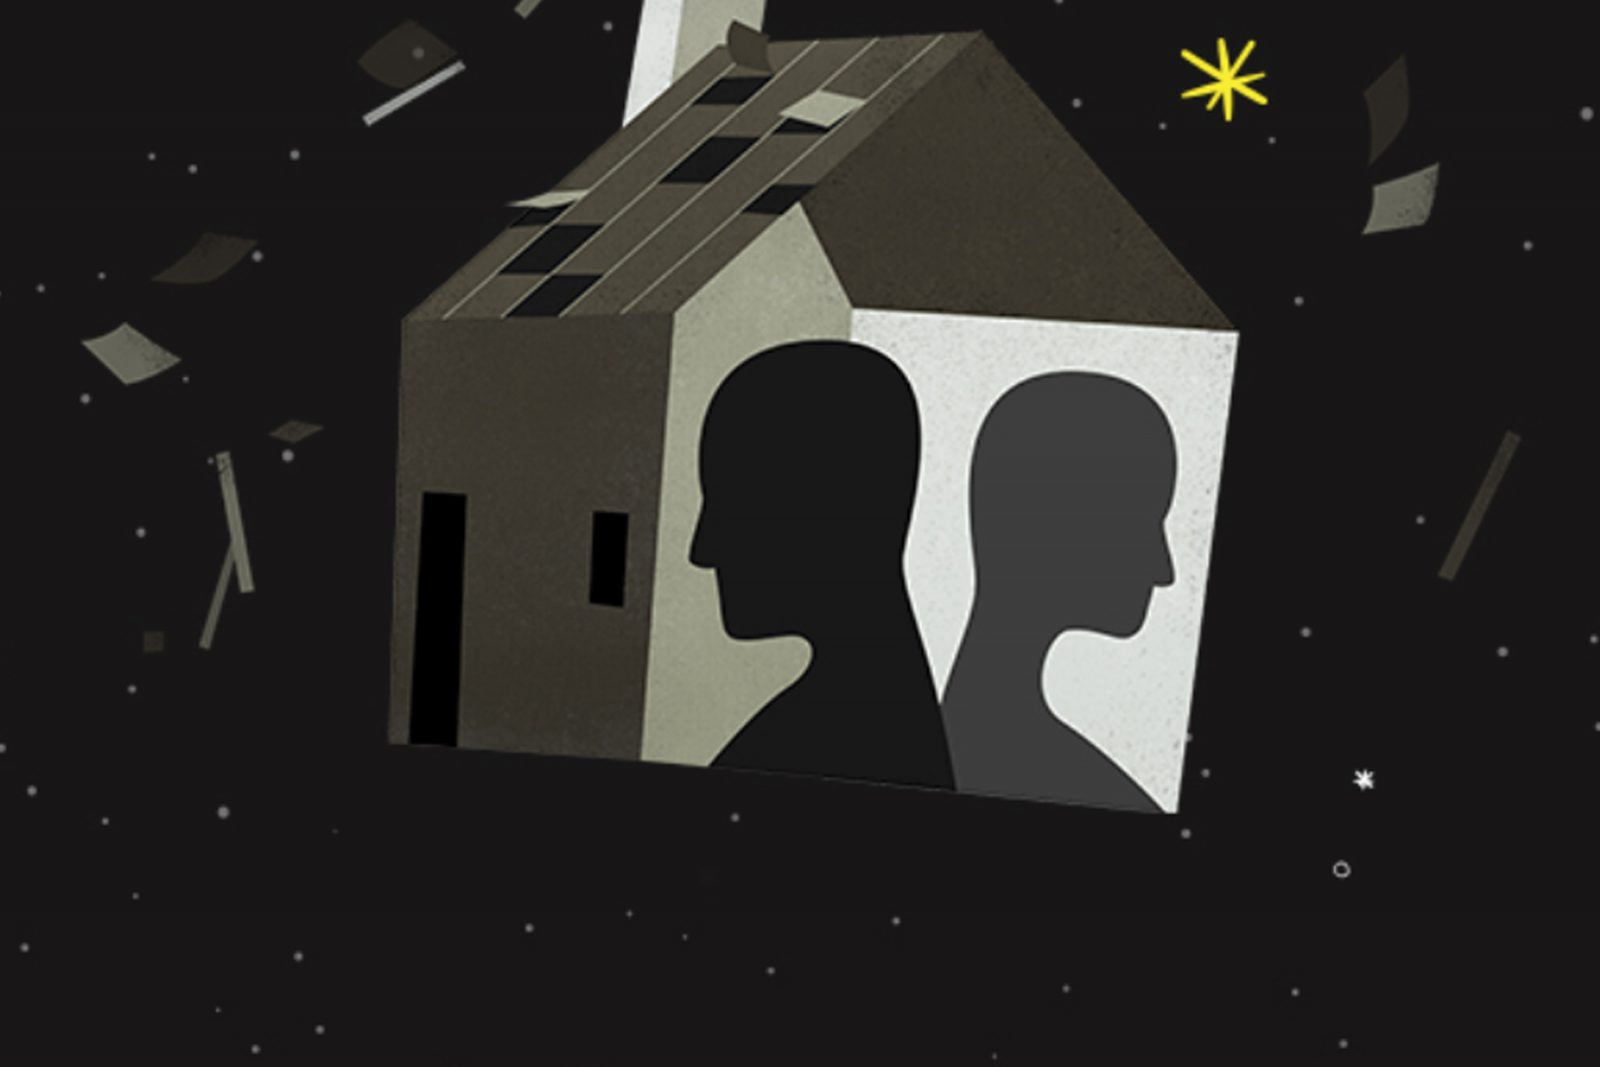 Graphic of two faces silhouetted in a house